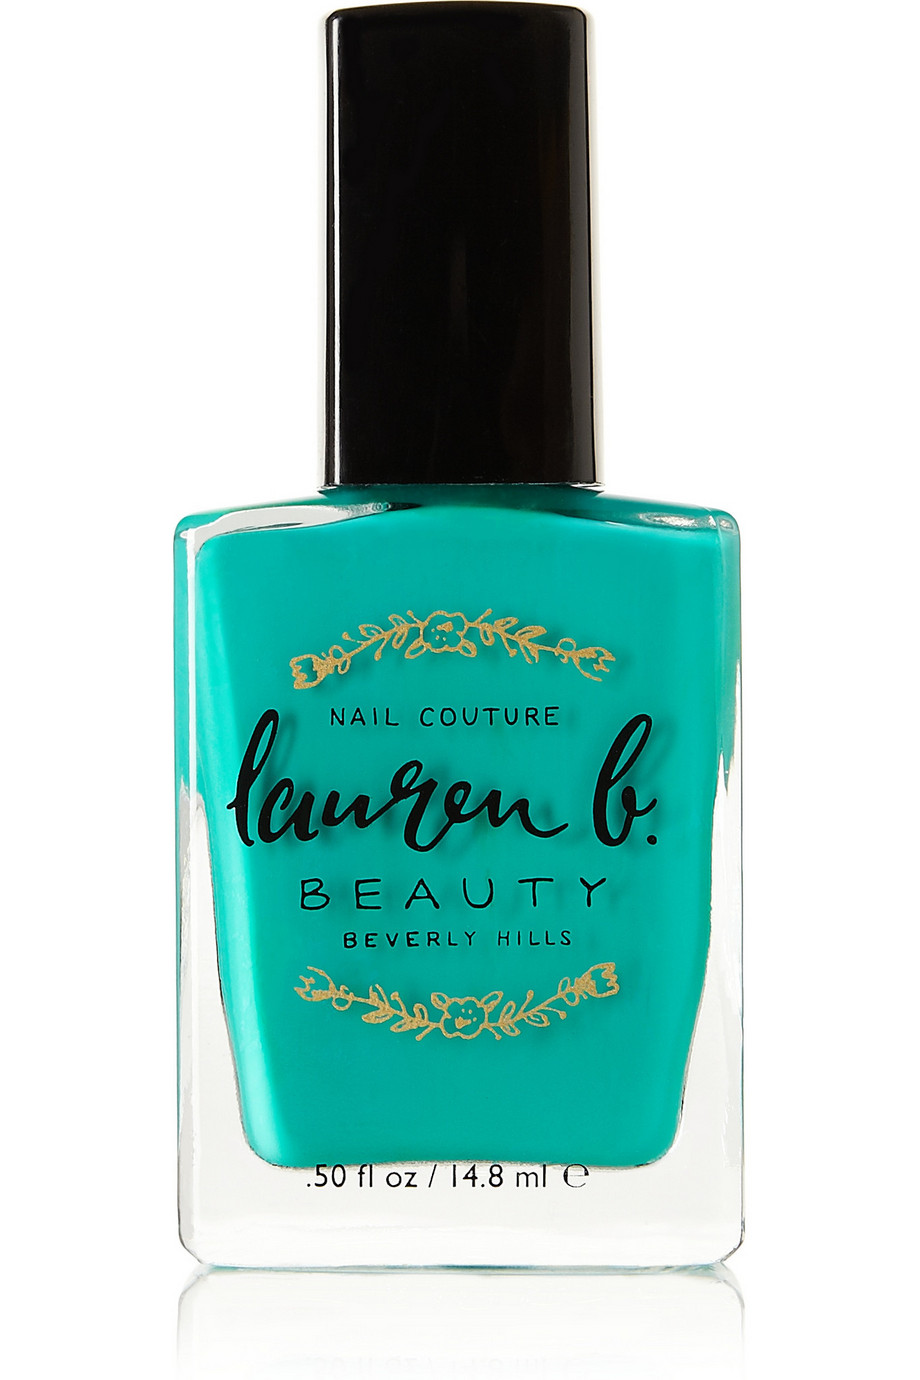 Nail Polish - Venice Beach Venus, by Lauren B. Beauty